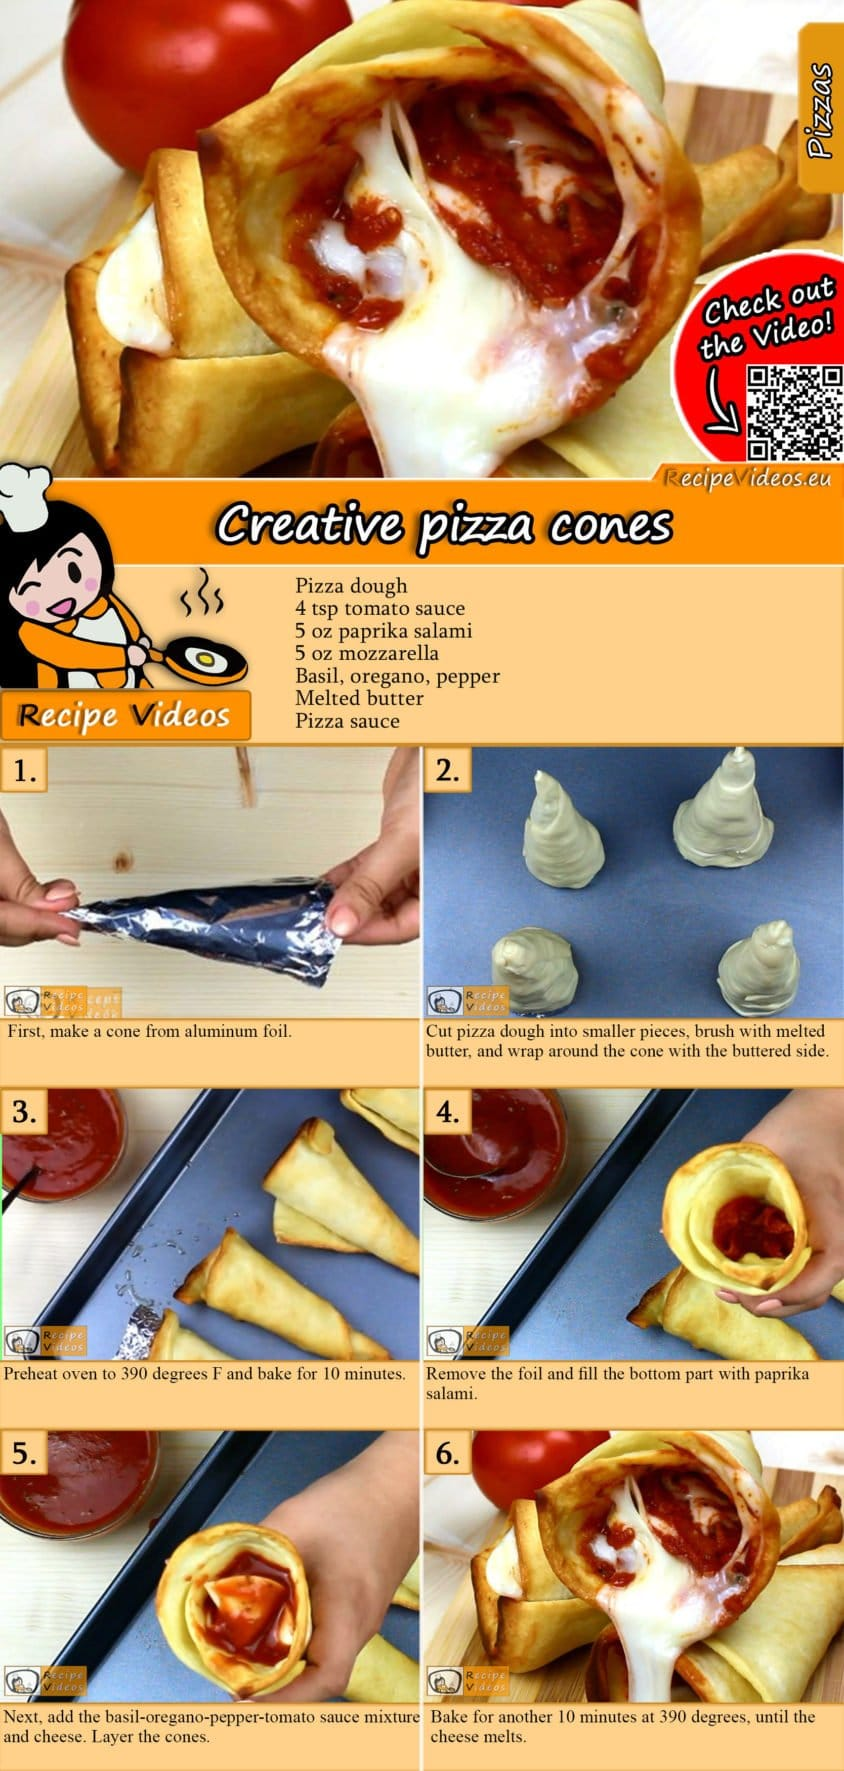 Creative pizza cones recipe with video